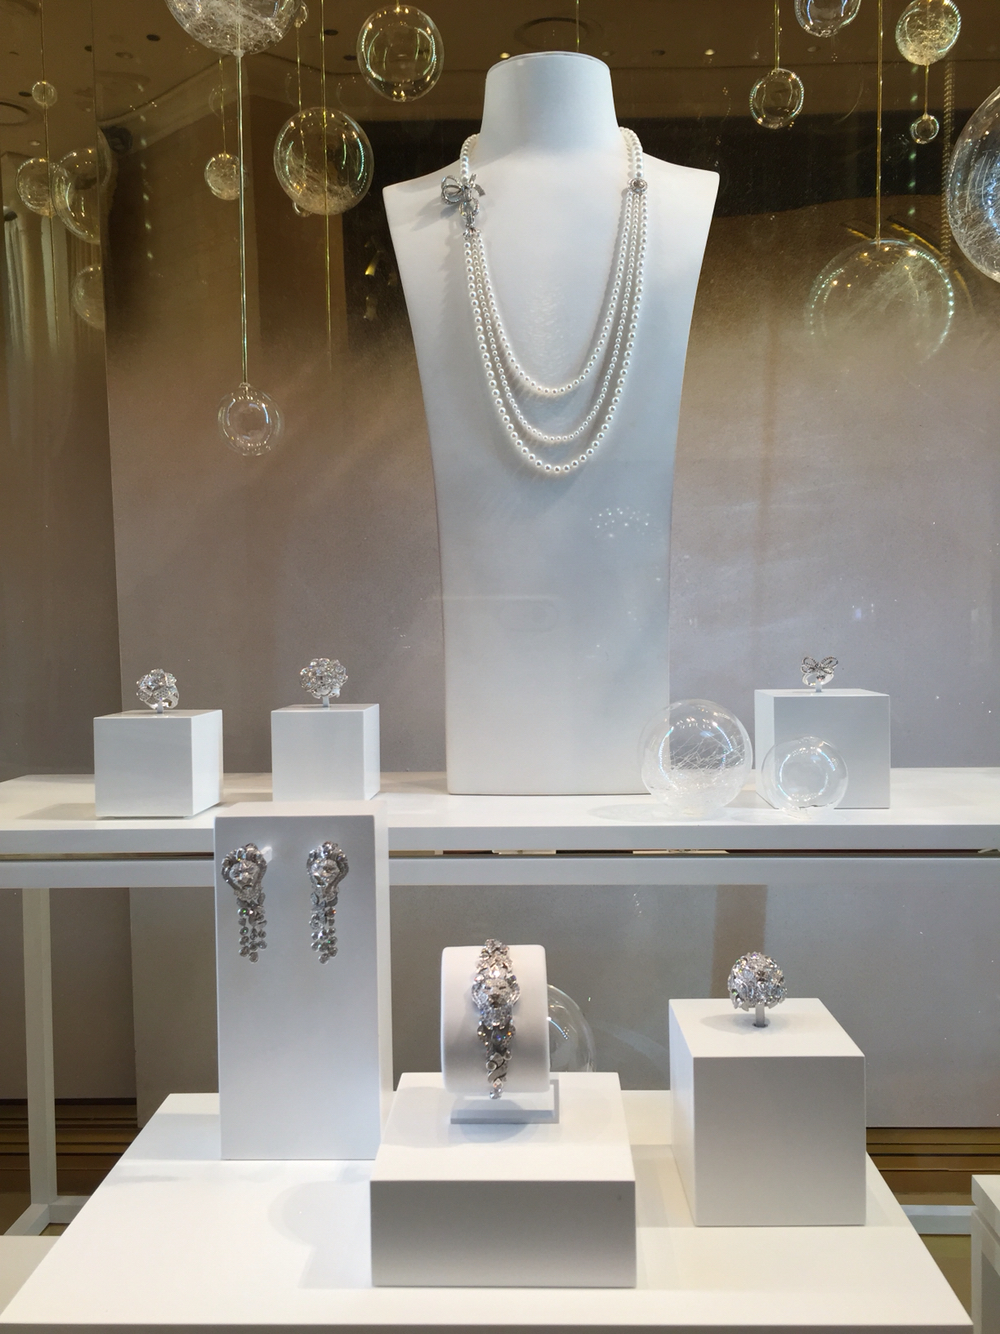 Another jewelry display setting for Chanel fine jewelry display at Encore Hotel in Las Vegas.